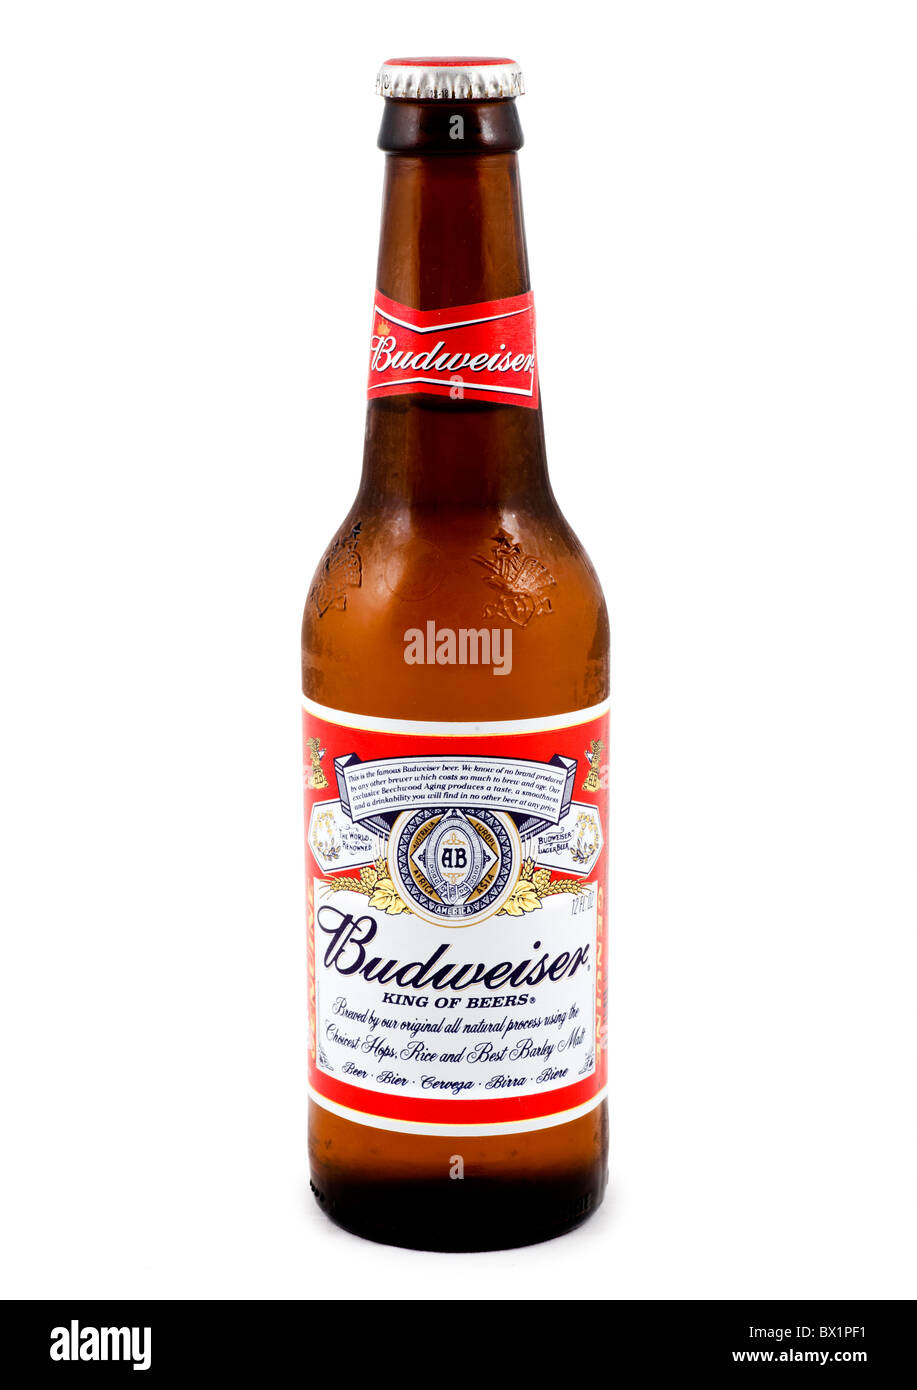 Bottle of ice cold budweiser beer usa stock photo royalty free image 33231045 alamy - Budweiser beer pictures ...